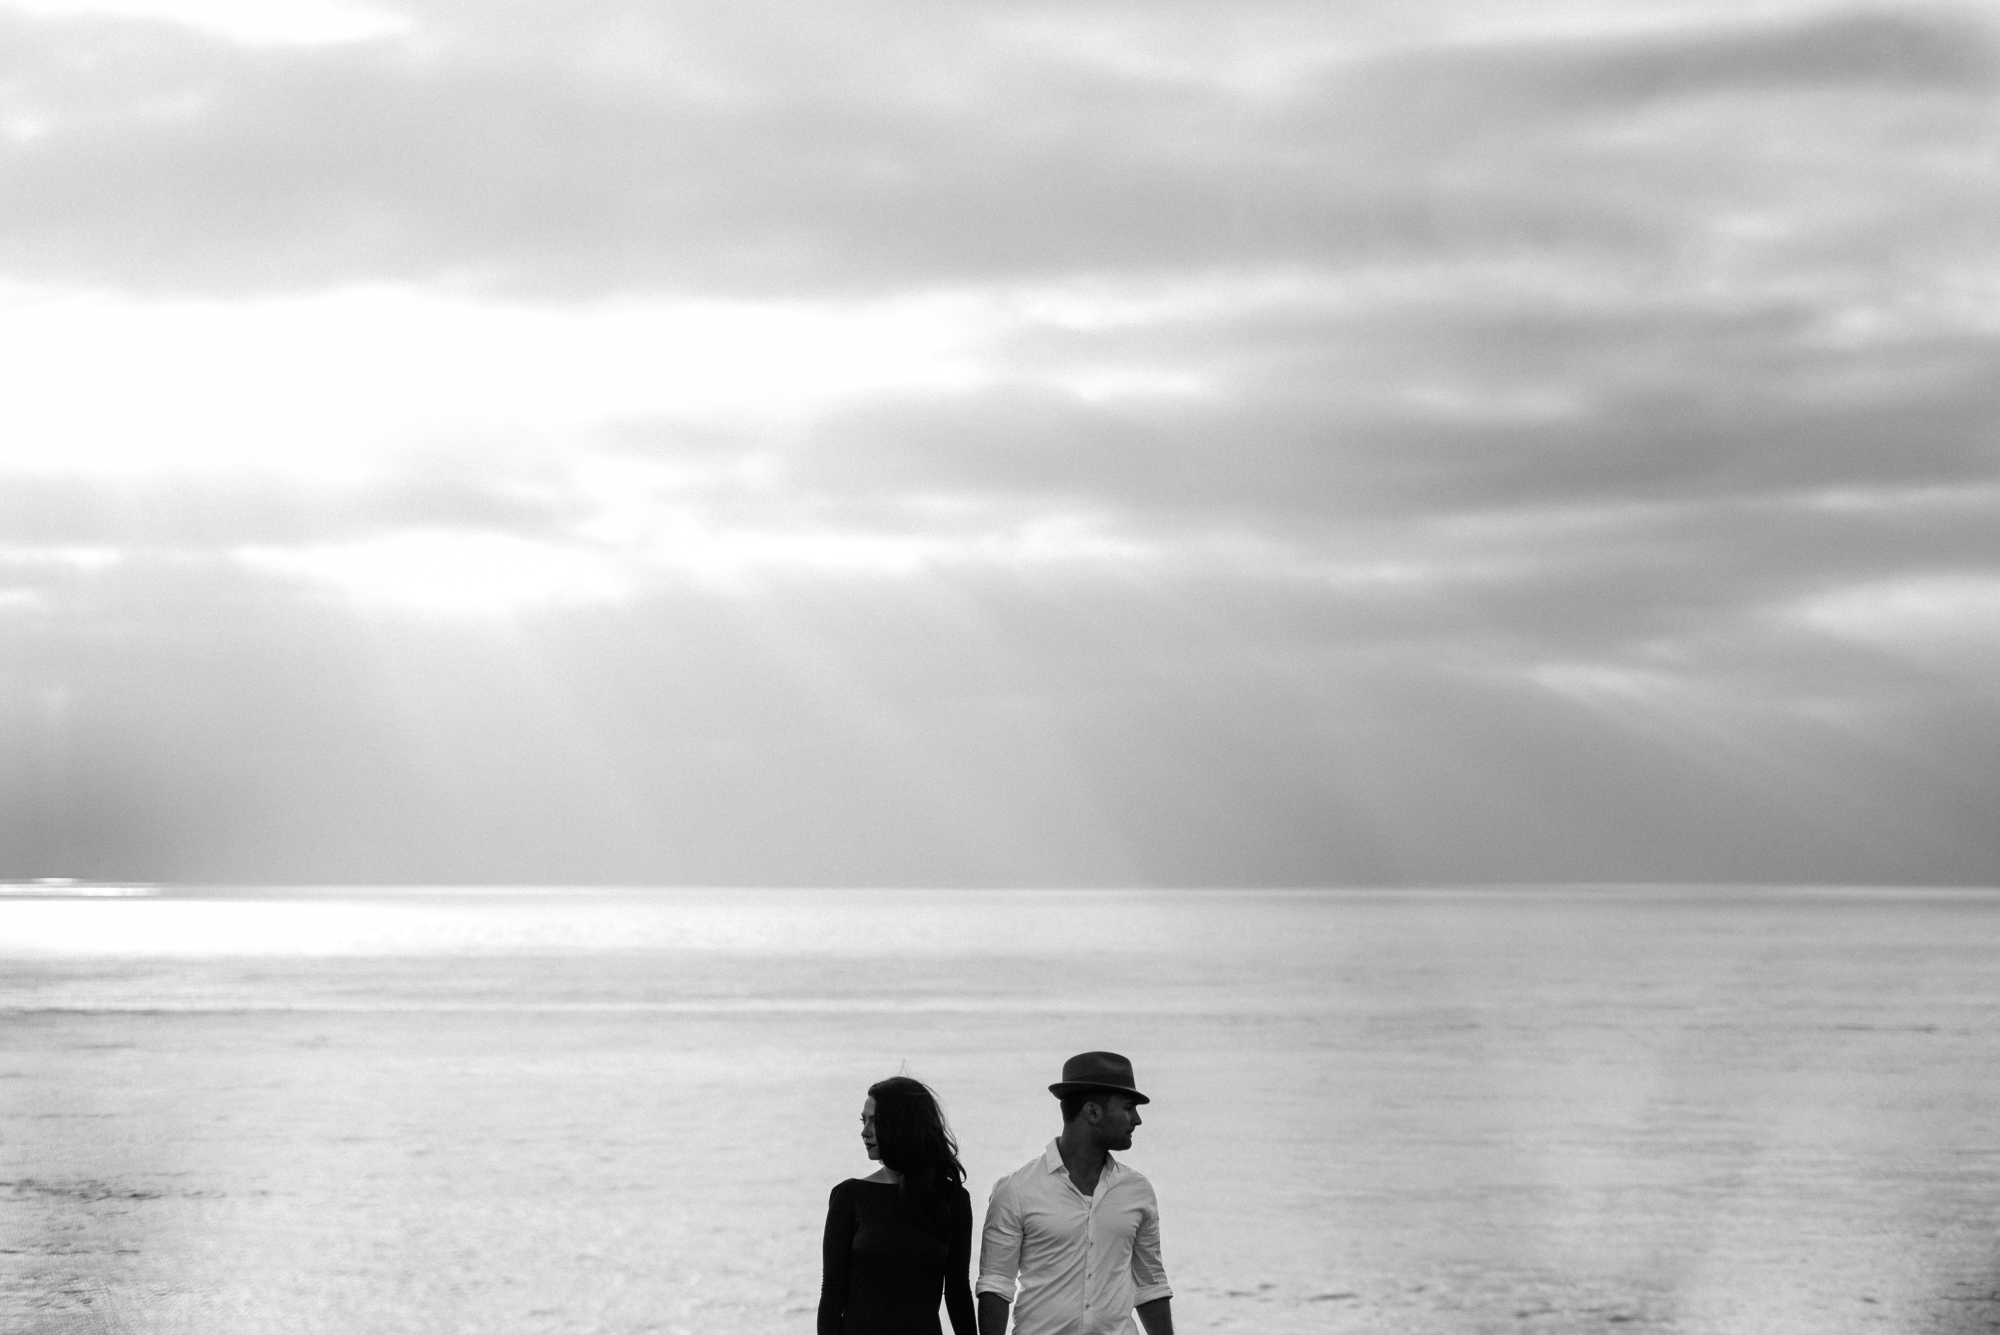 Isaiah & Taylor Photography - Los Angeles - Destination Wedding Photographers - San Diego Sunset Cliffs Beach Adventure Engagement-16.jpg